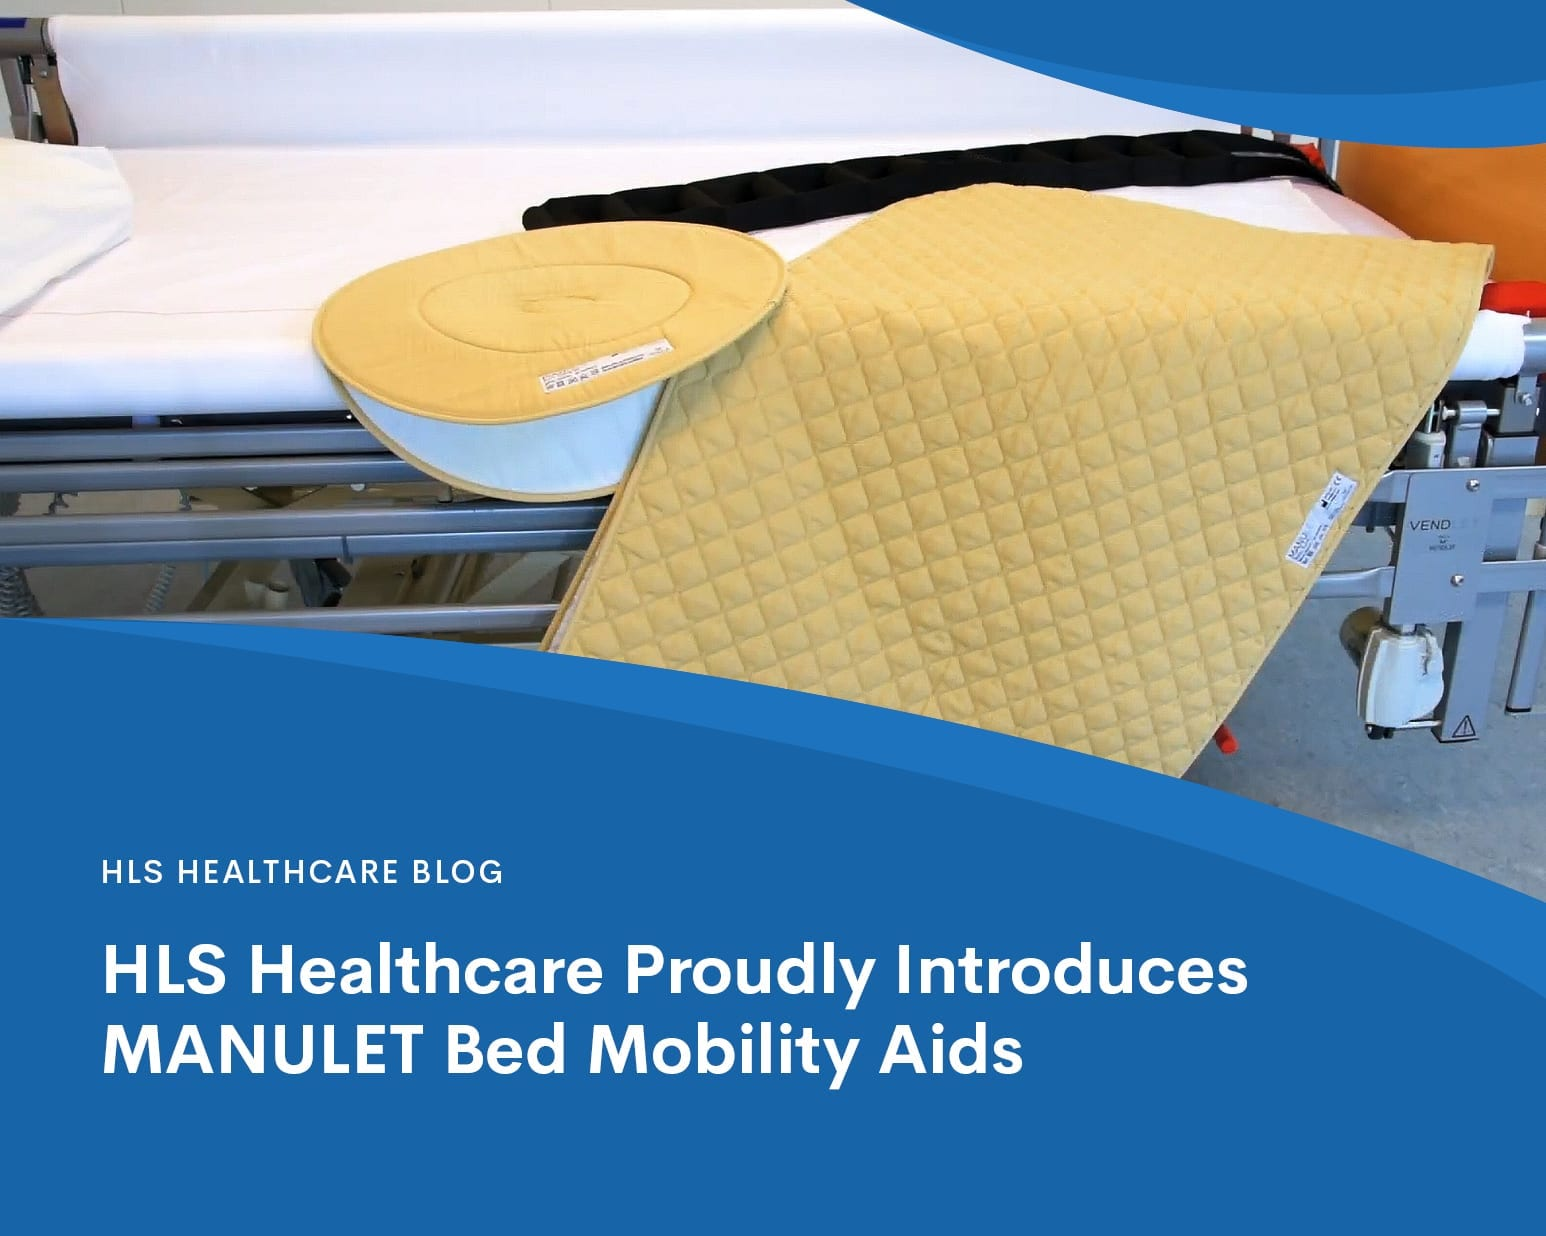 MANULET Bed Mobility Aids